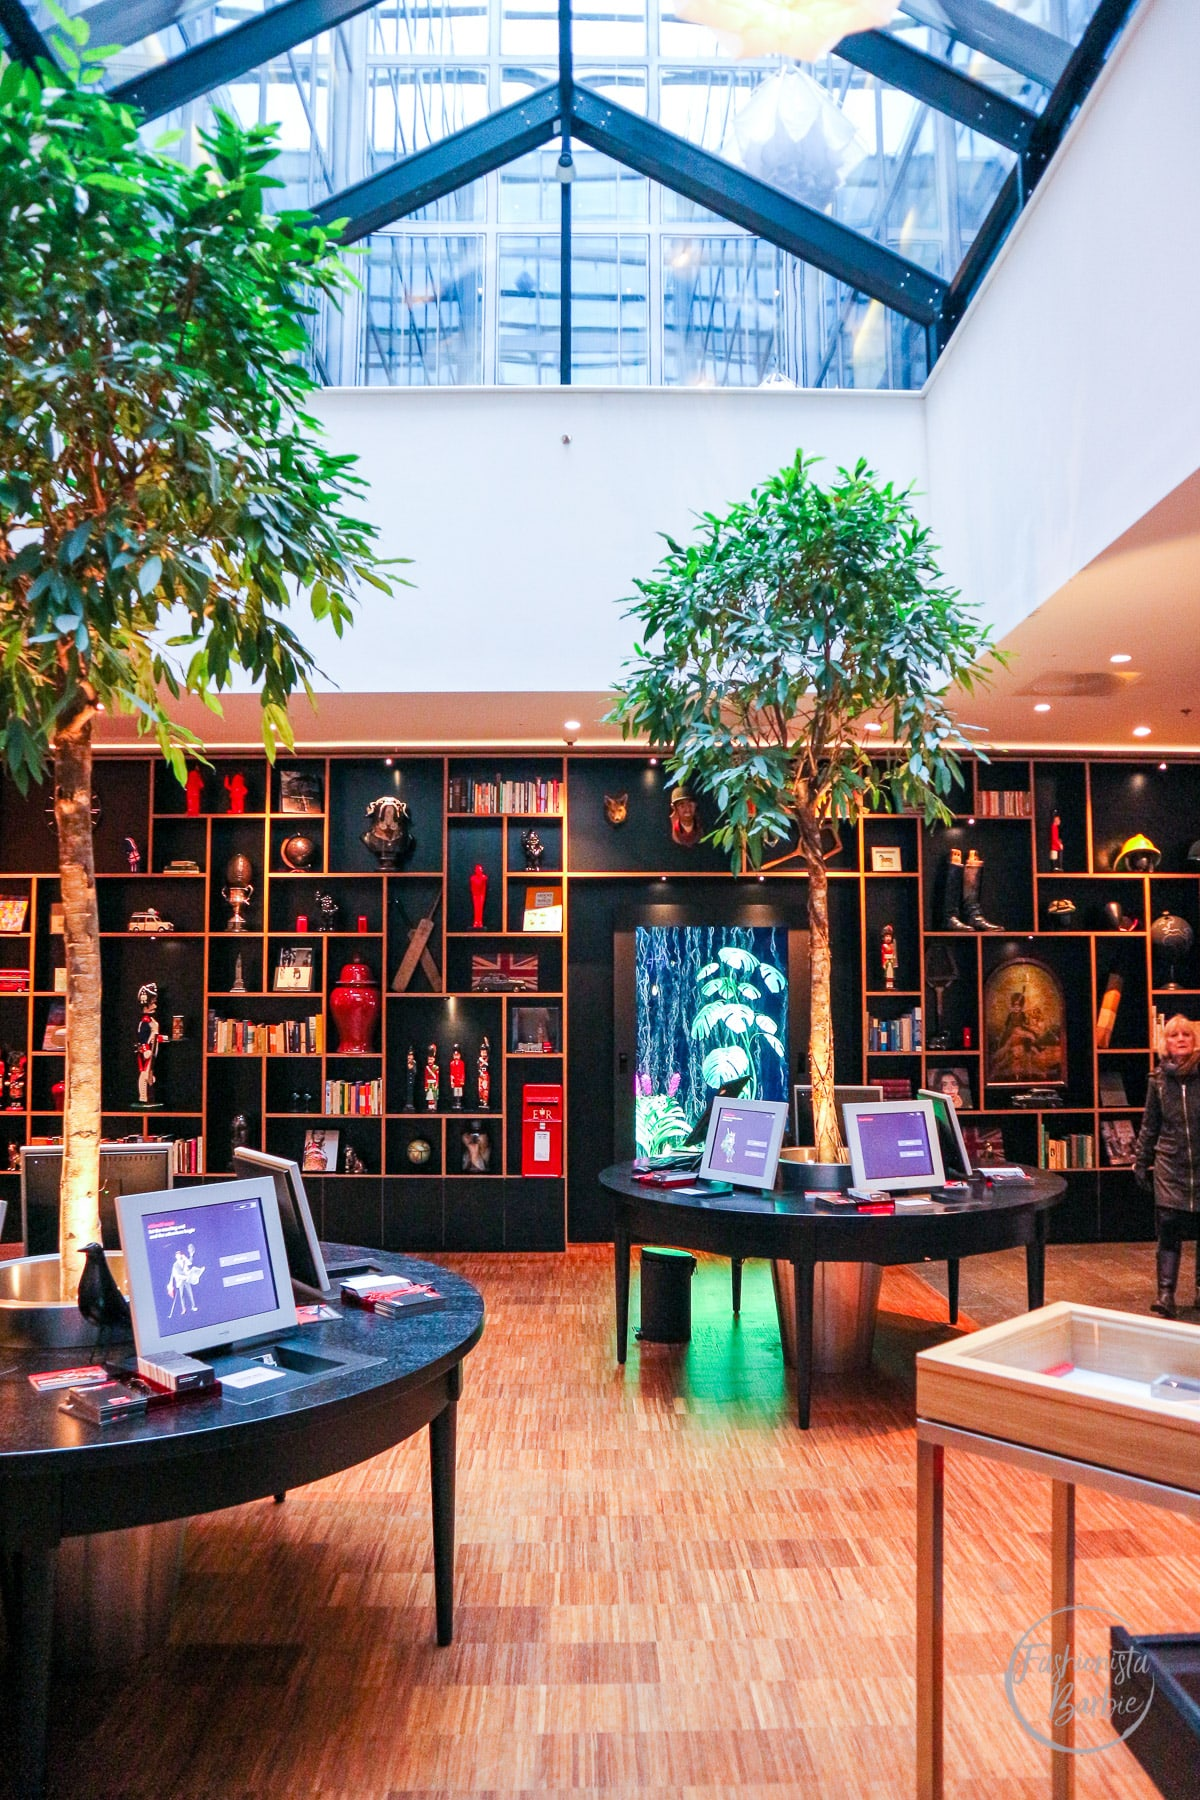 Citizenm, Citizenm Tower Hill, Budget Hotel, Affordable Hotel, Design Hotel,  Hotel